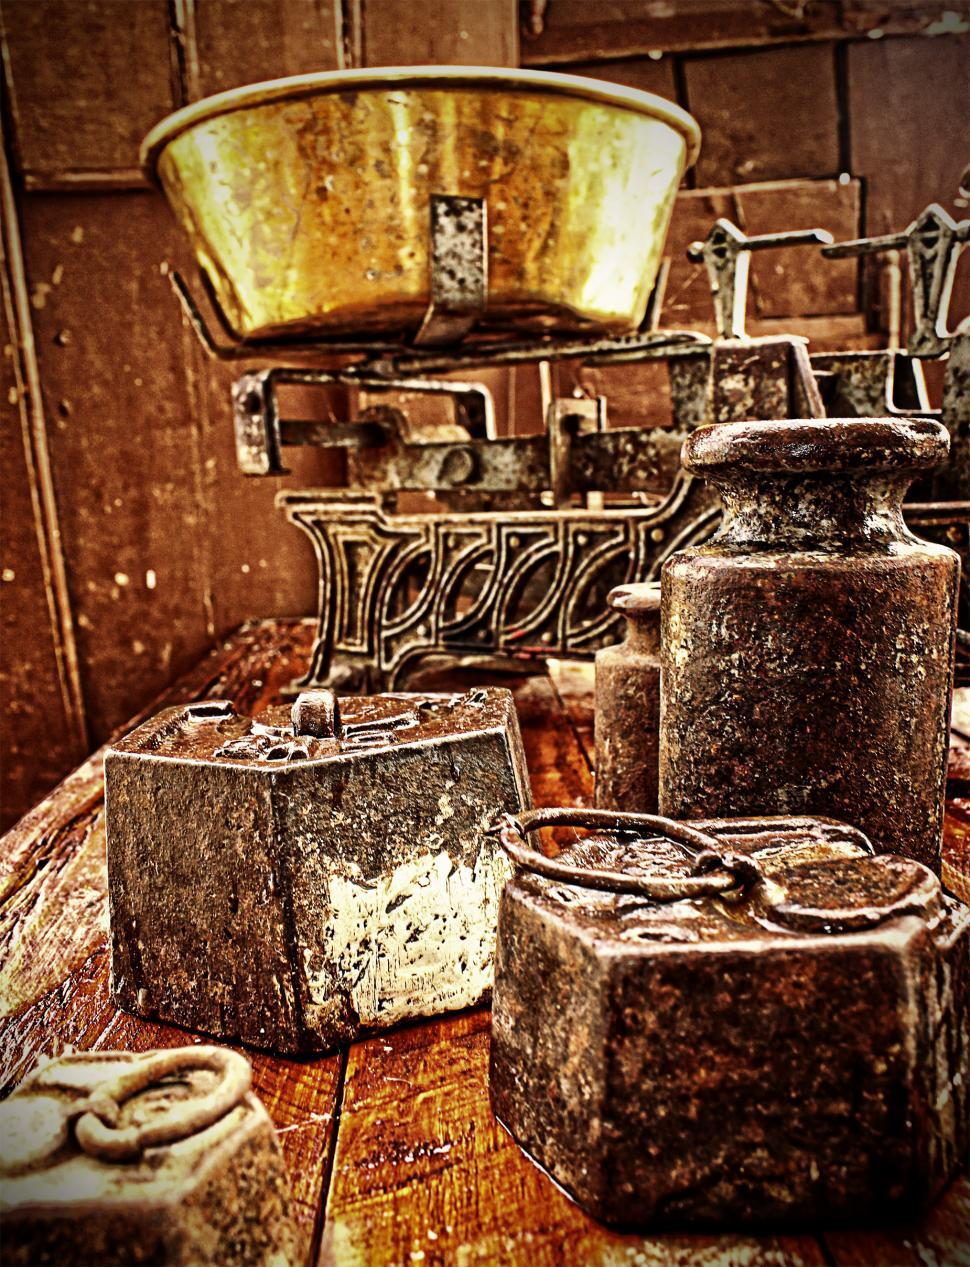 Download Free Stock HD Photo of Old rusty scales and weights - Grunge looks Online